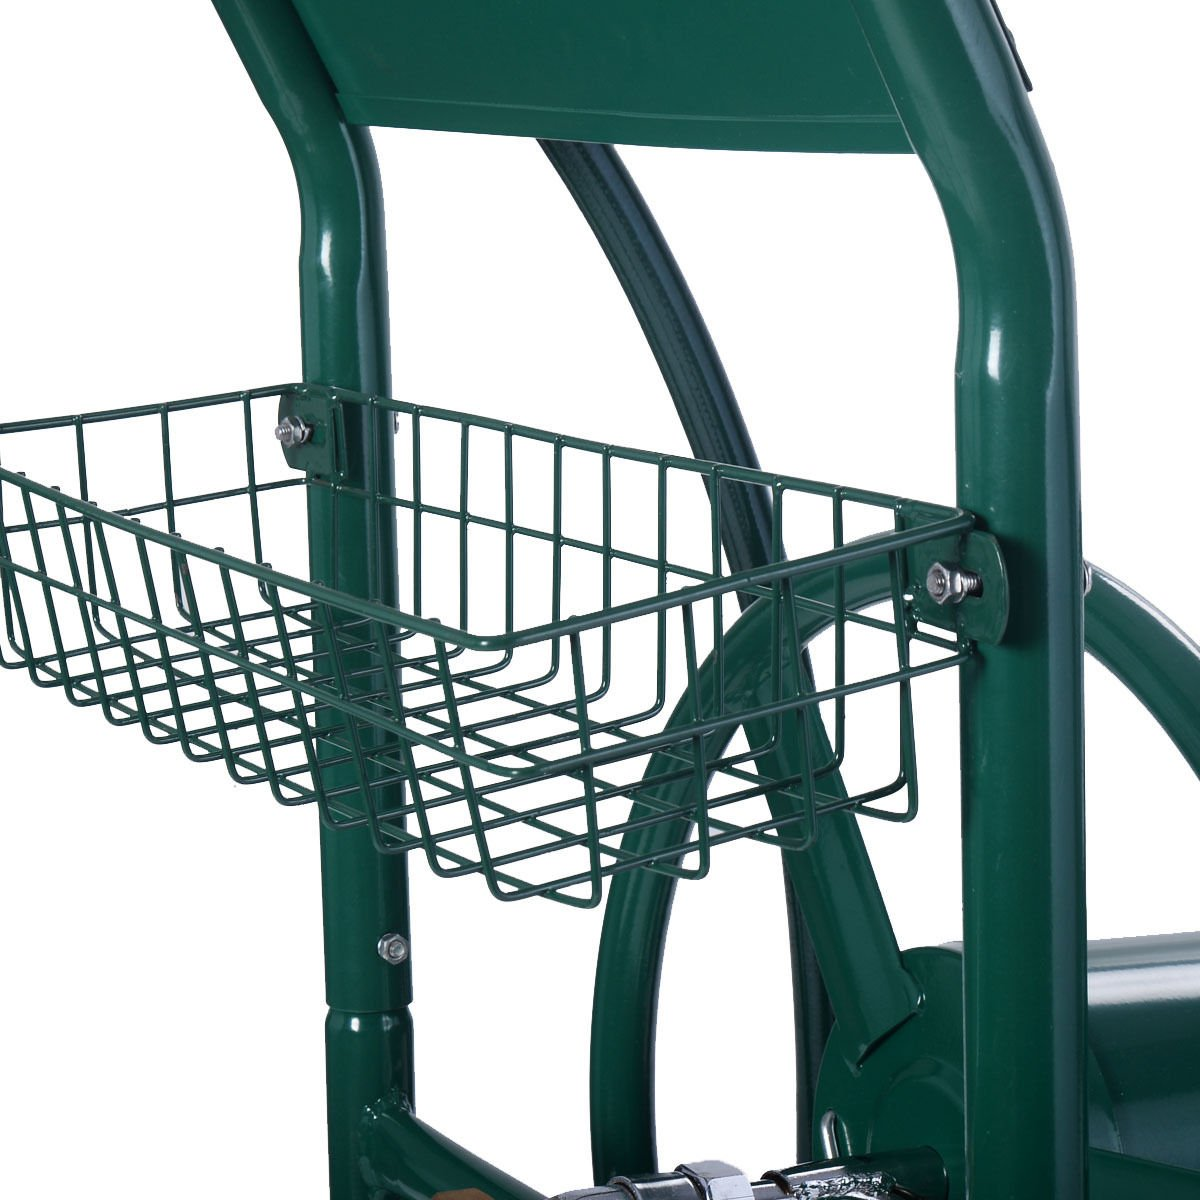 Wakrays Garden Water Hose Reel Cart 300FT Outdoor Heavy Duty Yard Planting W/Basket New by Wakrays (Image #4)